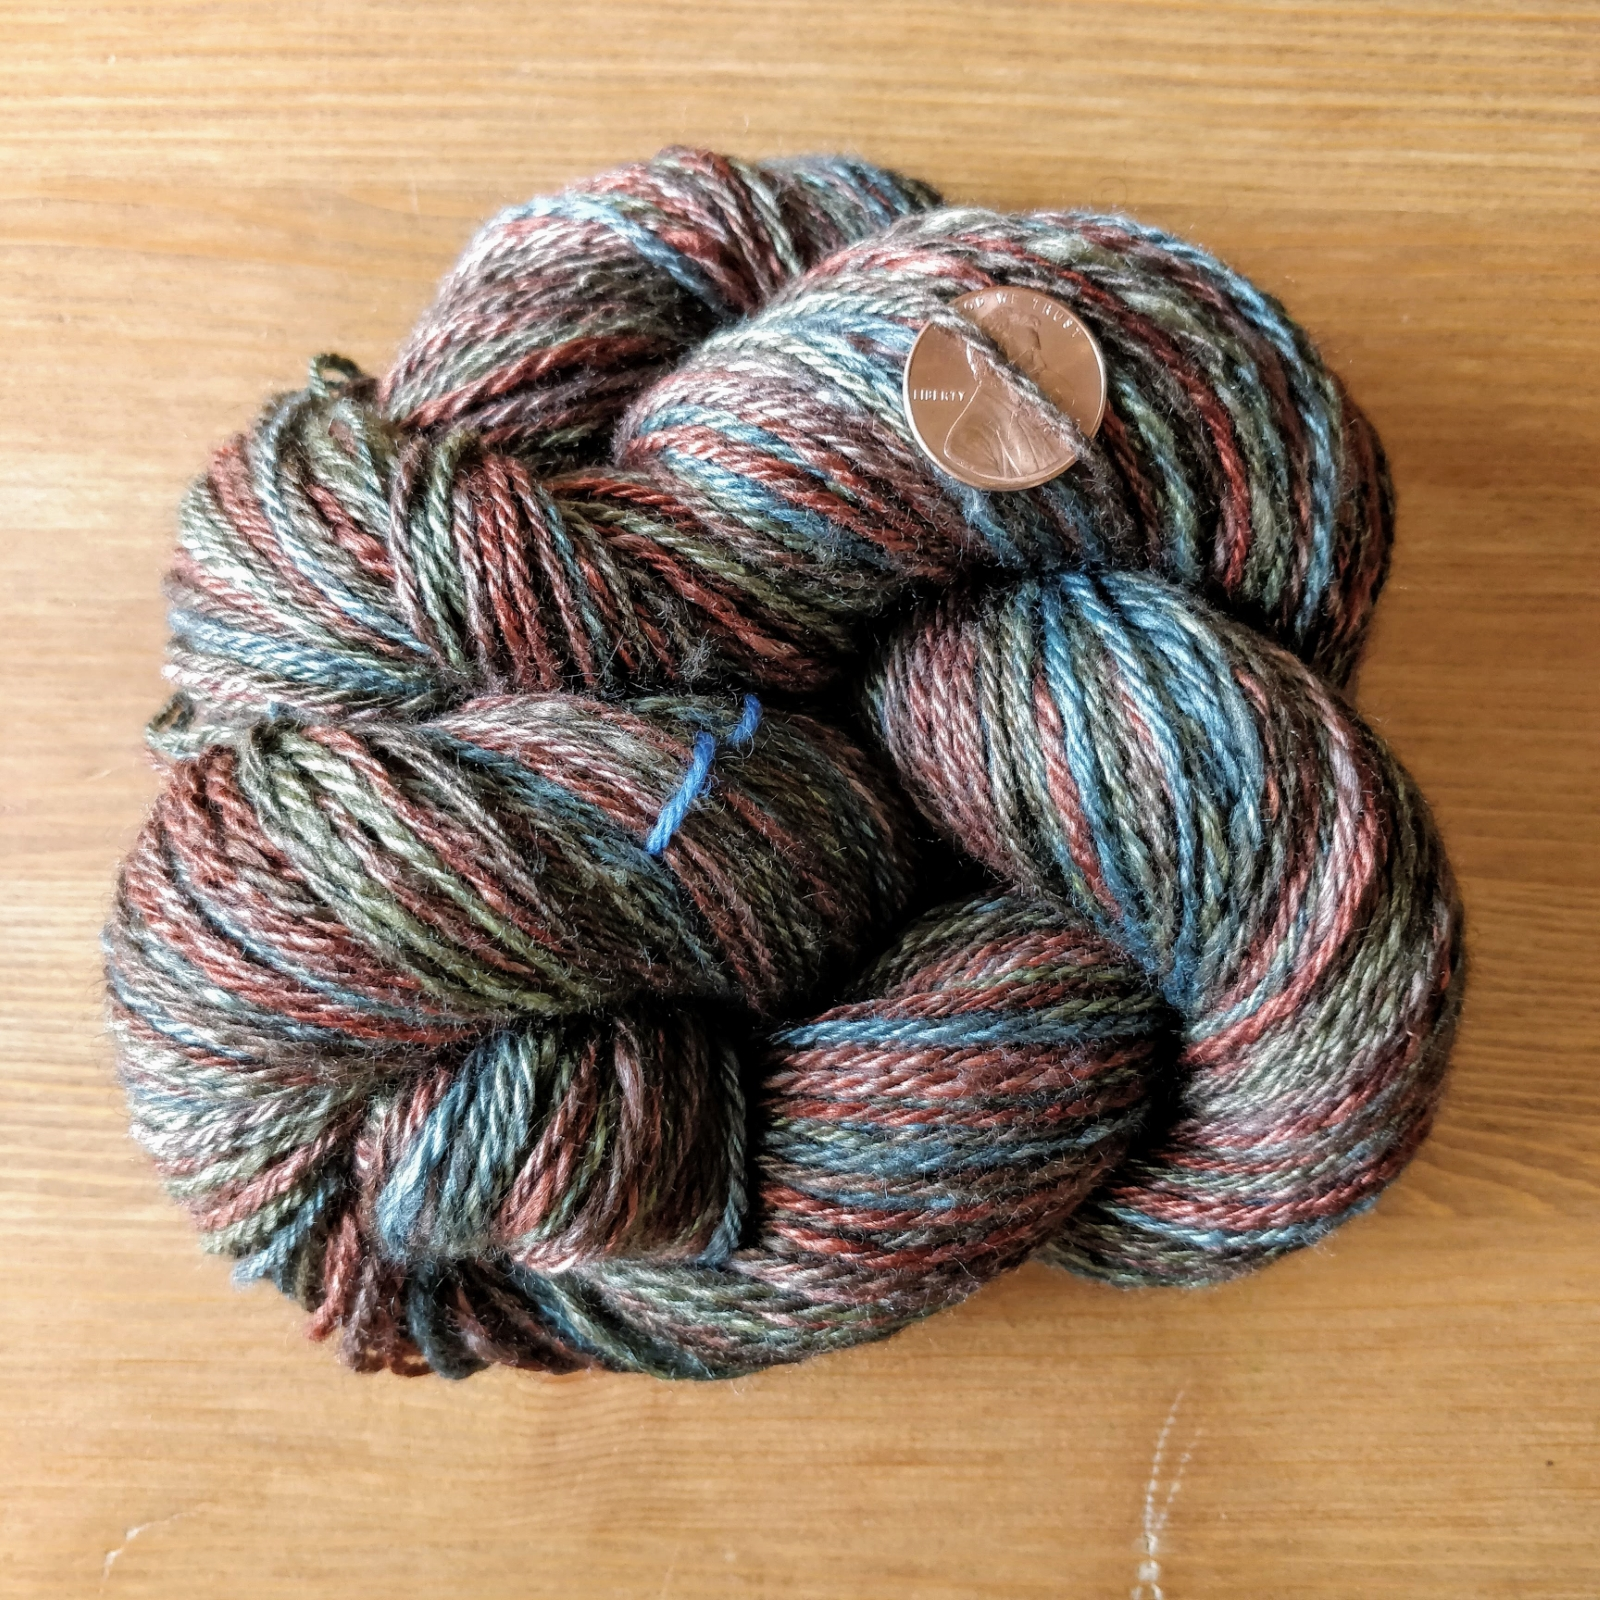 skein of fingering-weight yak-silk yarn in reds, browns, greens and blues